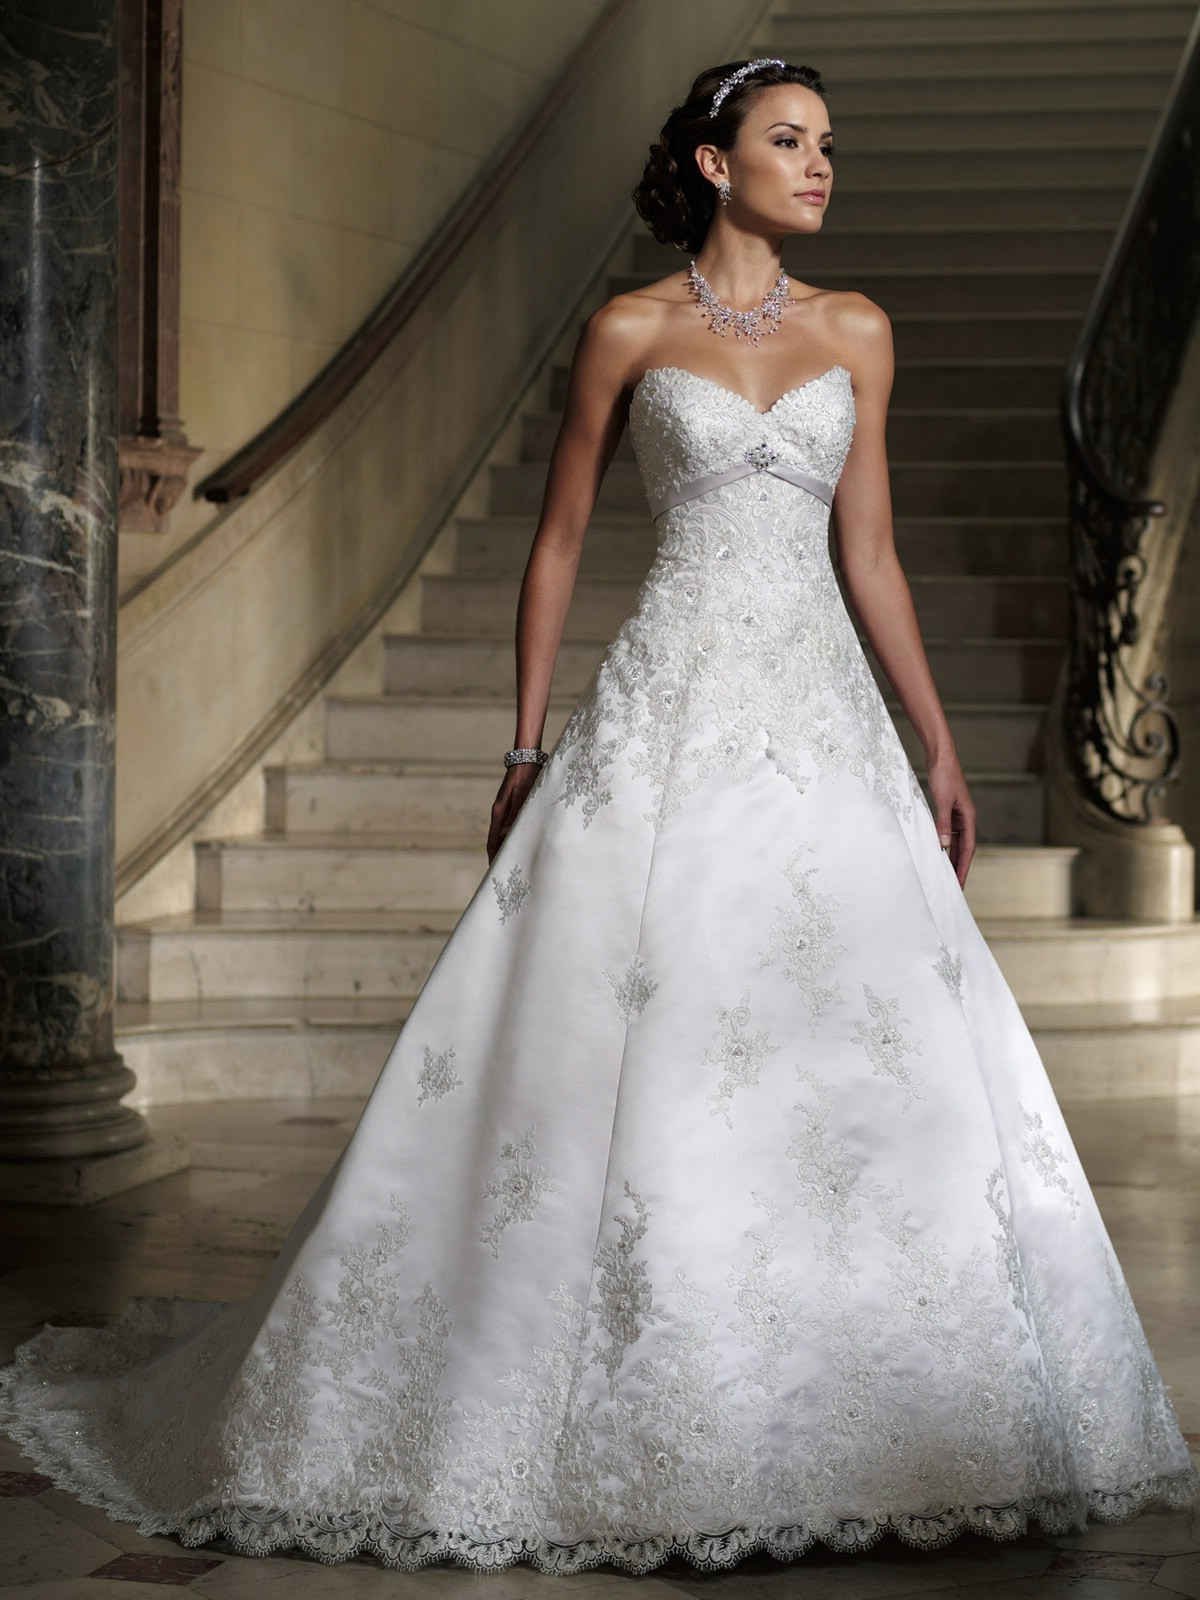 What Are the Best Wedding Dresses for Petite Brides | The Best ...